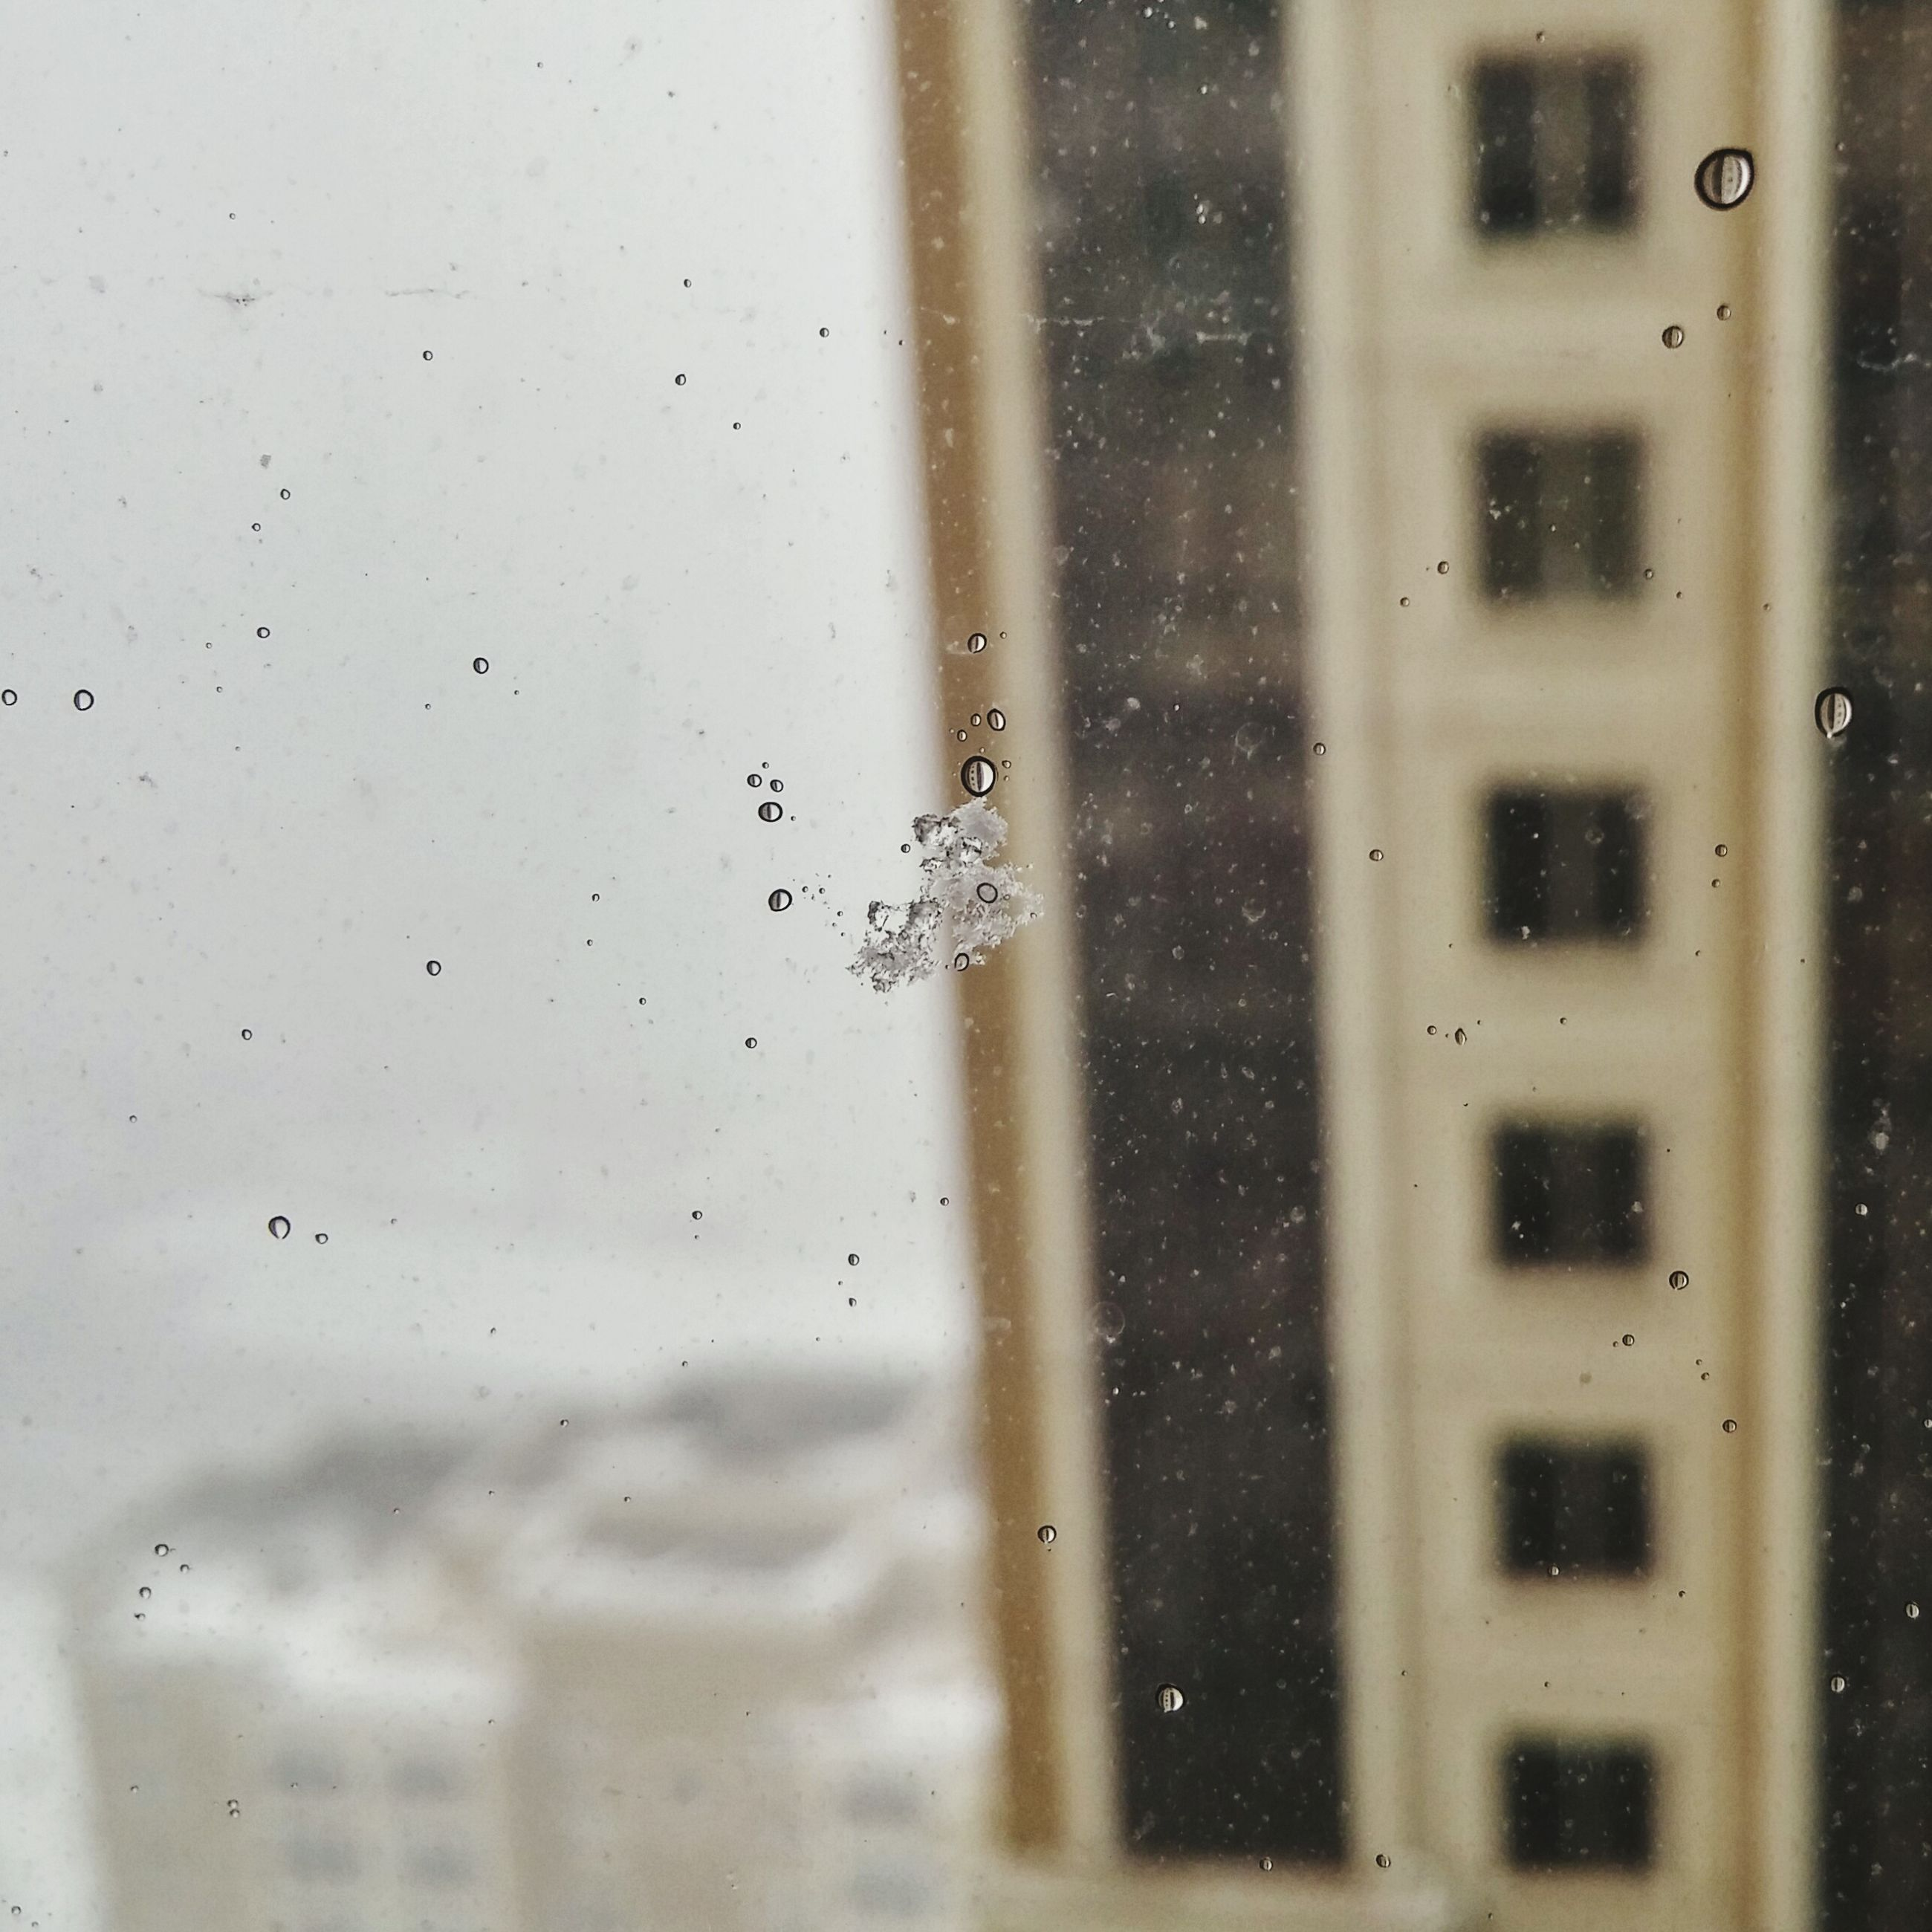 window, drop, indoors, glass - material, transparent, wet, full frame, backgrounds, rain, water, architecture, built structure, weather, raindrop, glass, focus on foreground, building exterior, no people, day, close-up